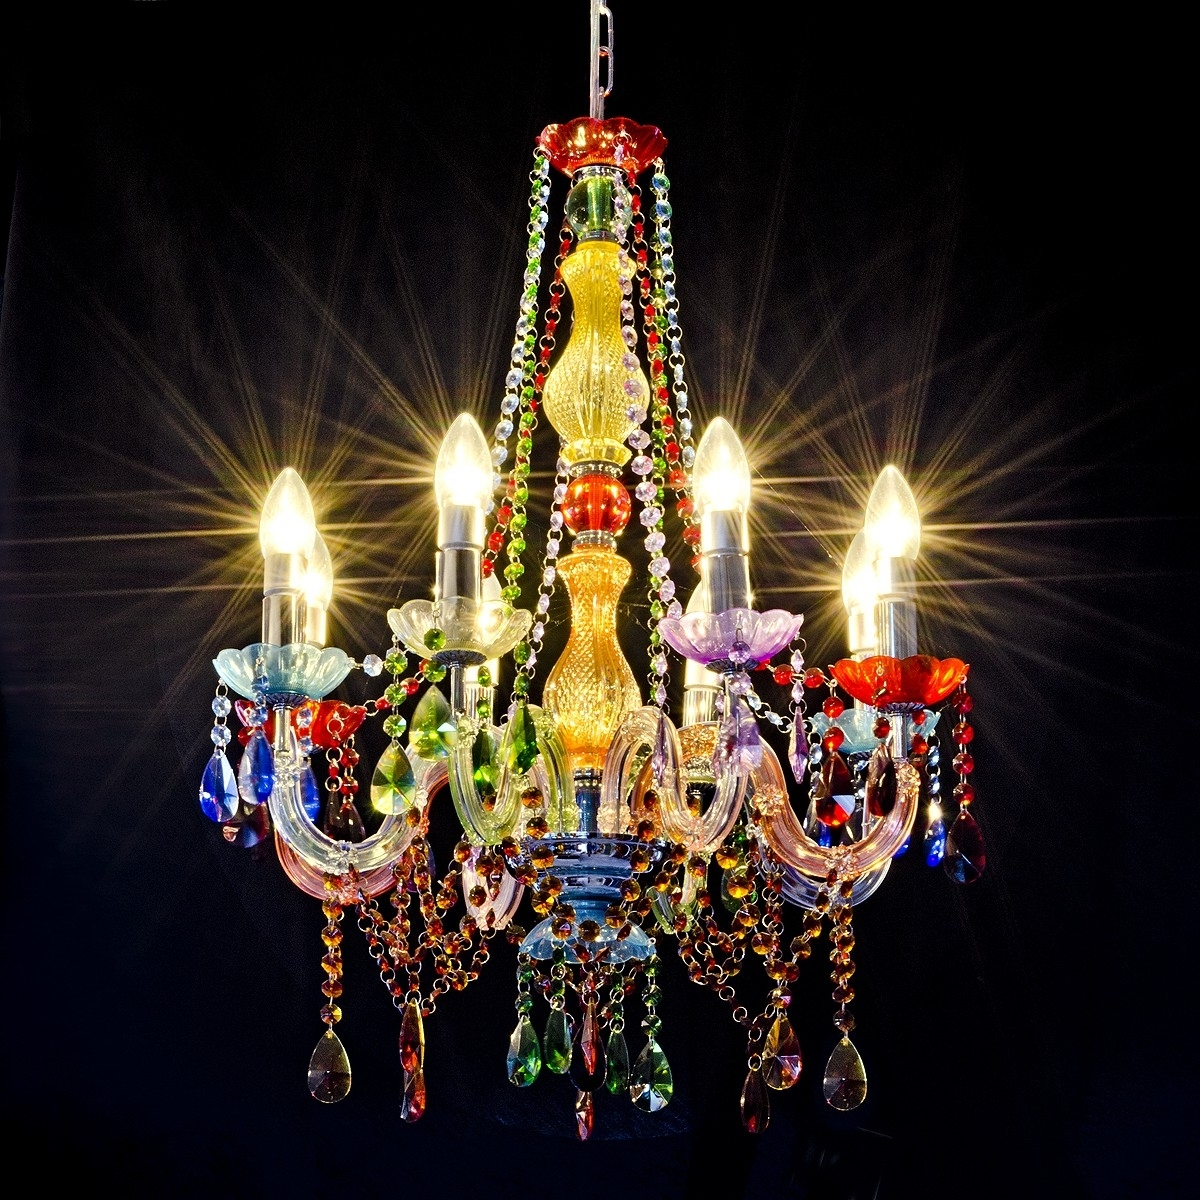 Unusual Chandeliers With Recent Chandelier (View 17 of 20)